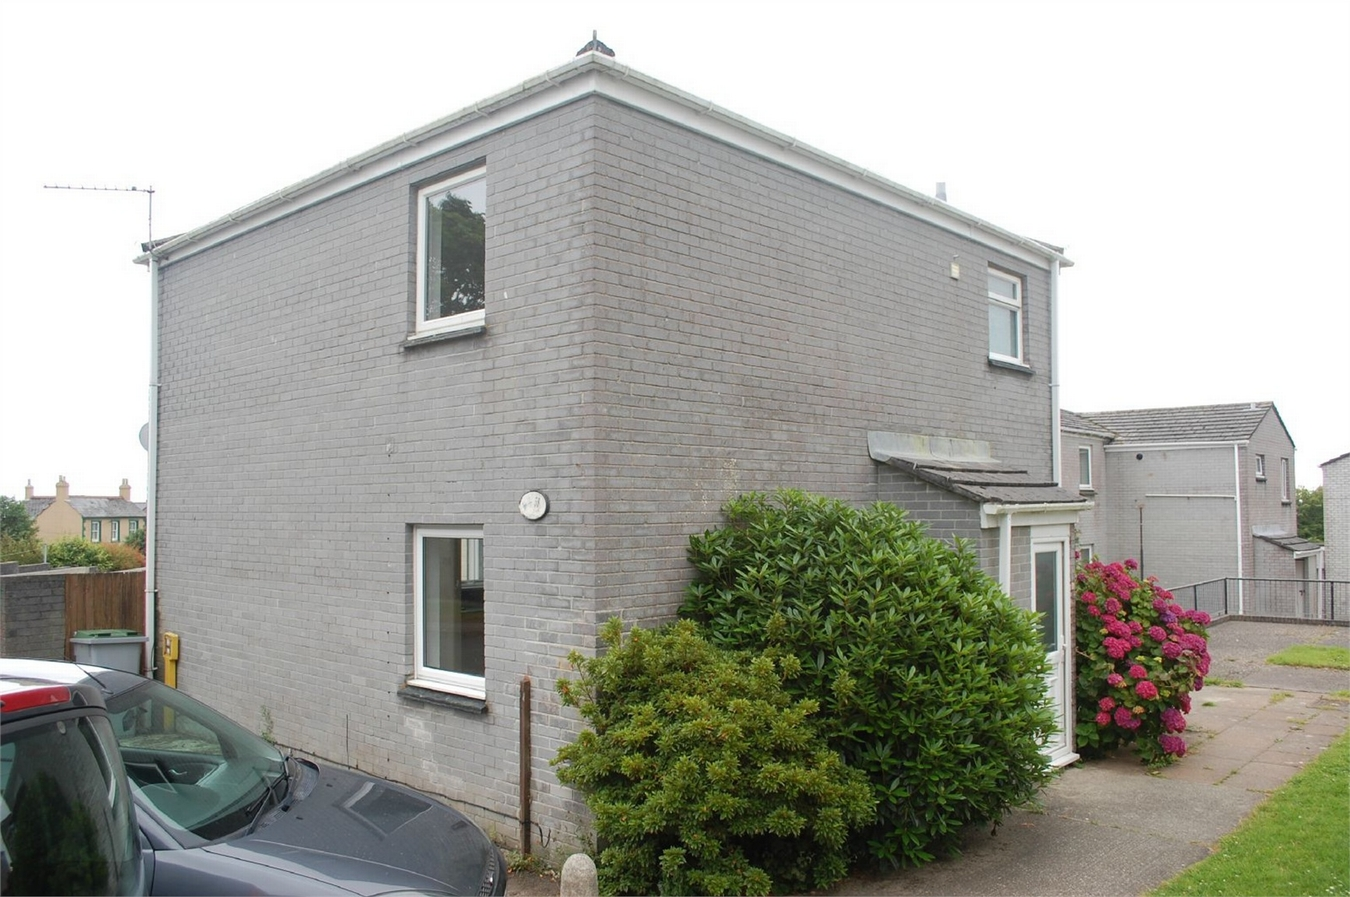 L Shaped Shower Bath Suite 3 Bedroom End Of Terrace House For Sale In St Austell